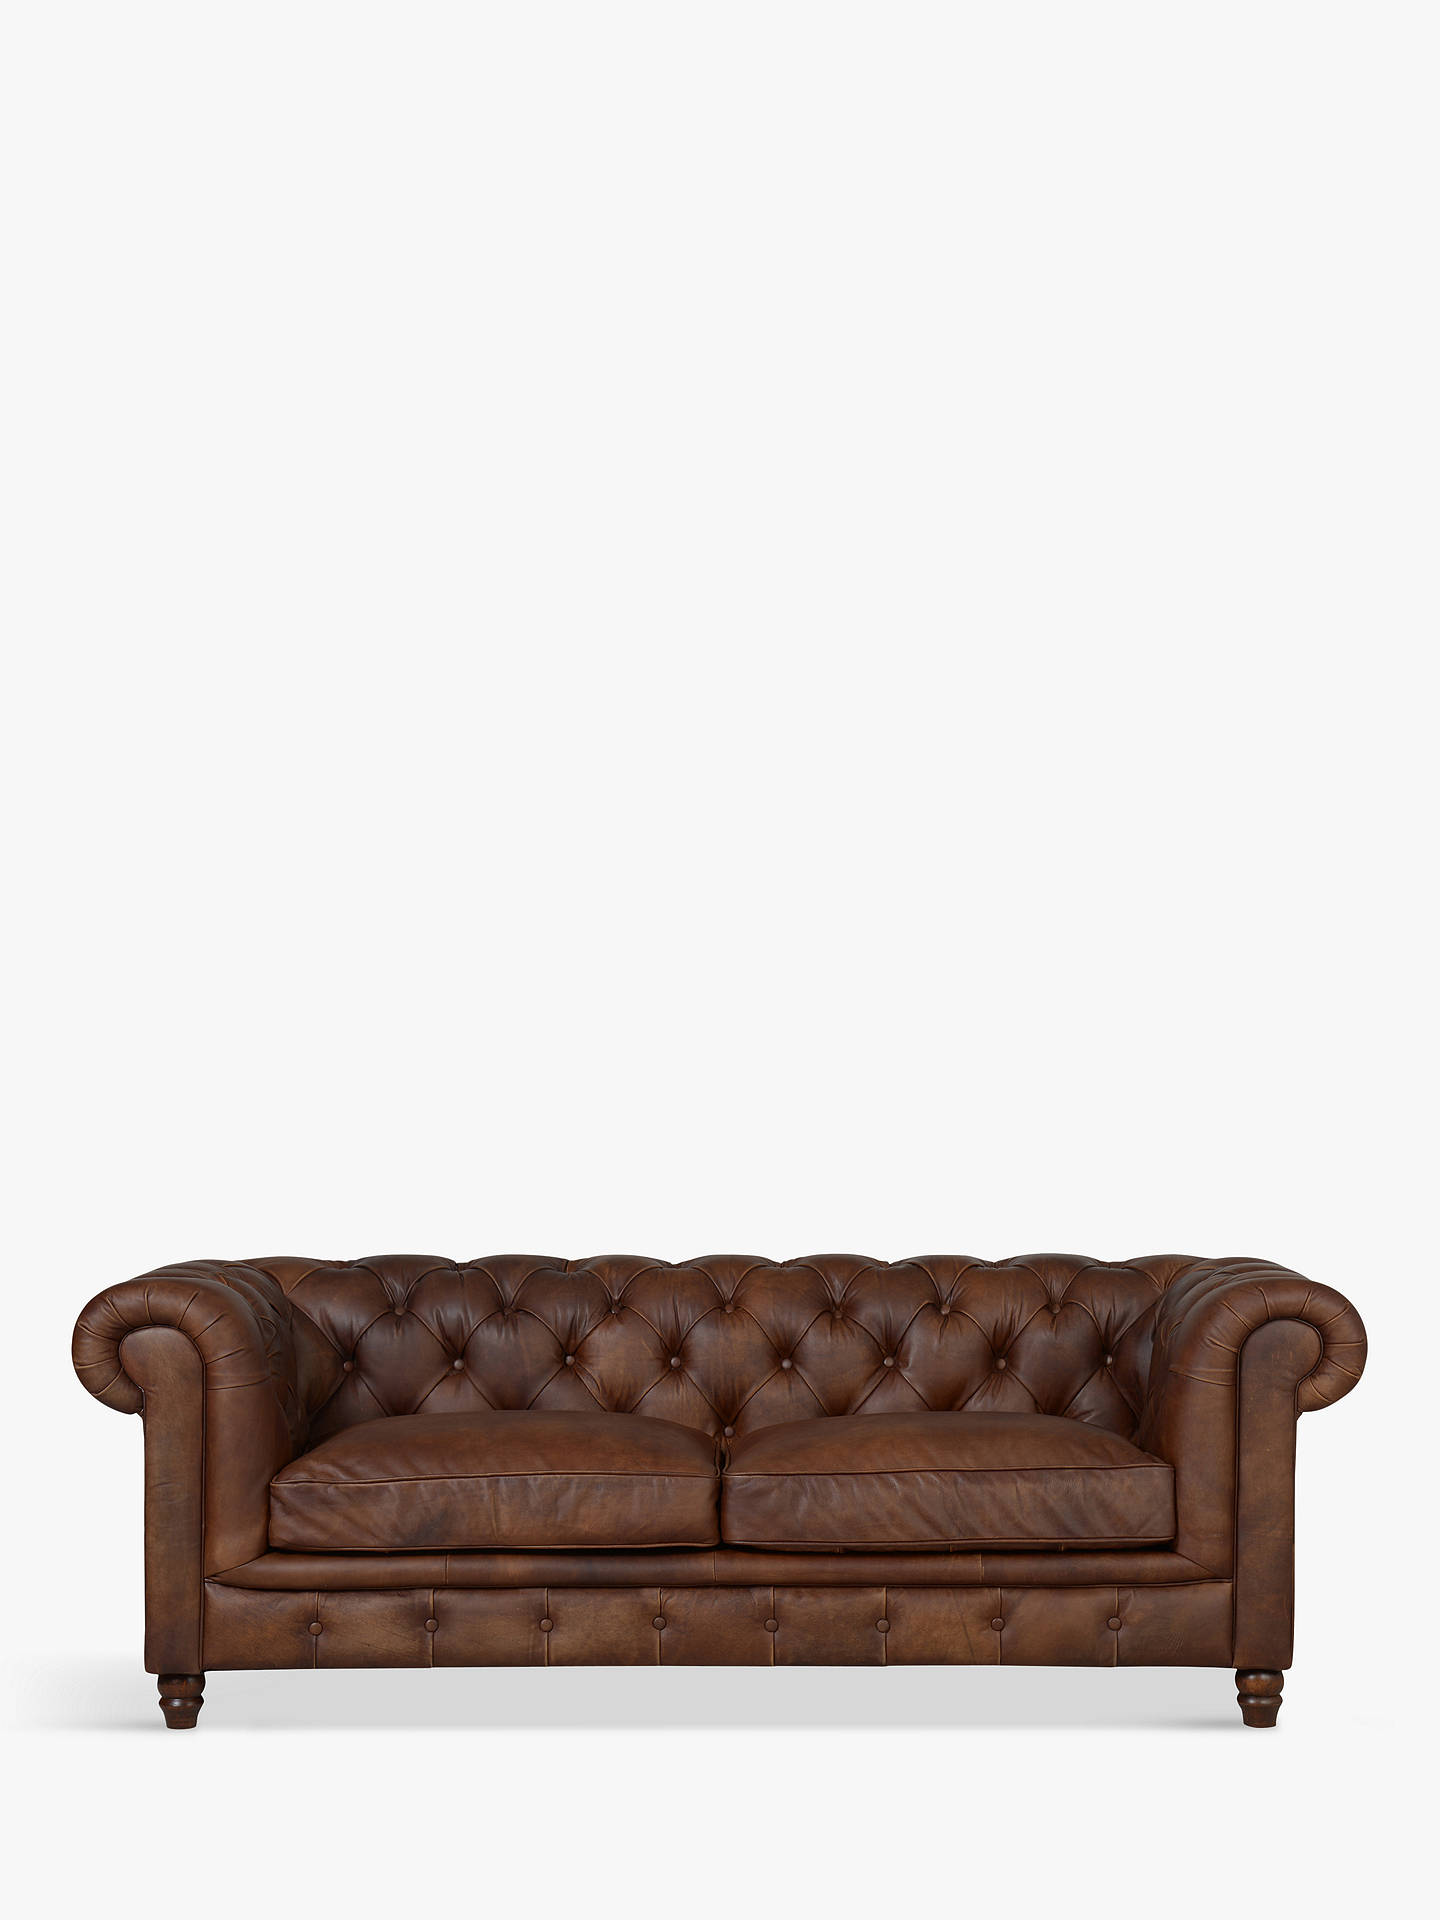 BuyHalo Earle Aniline Leather Chesterfield Medium Sofa, Antique Whisky Online at johnlewis.com